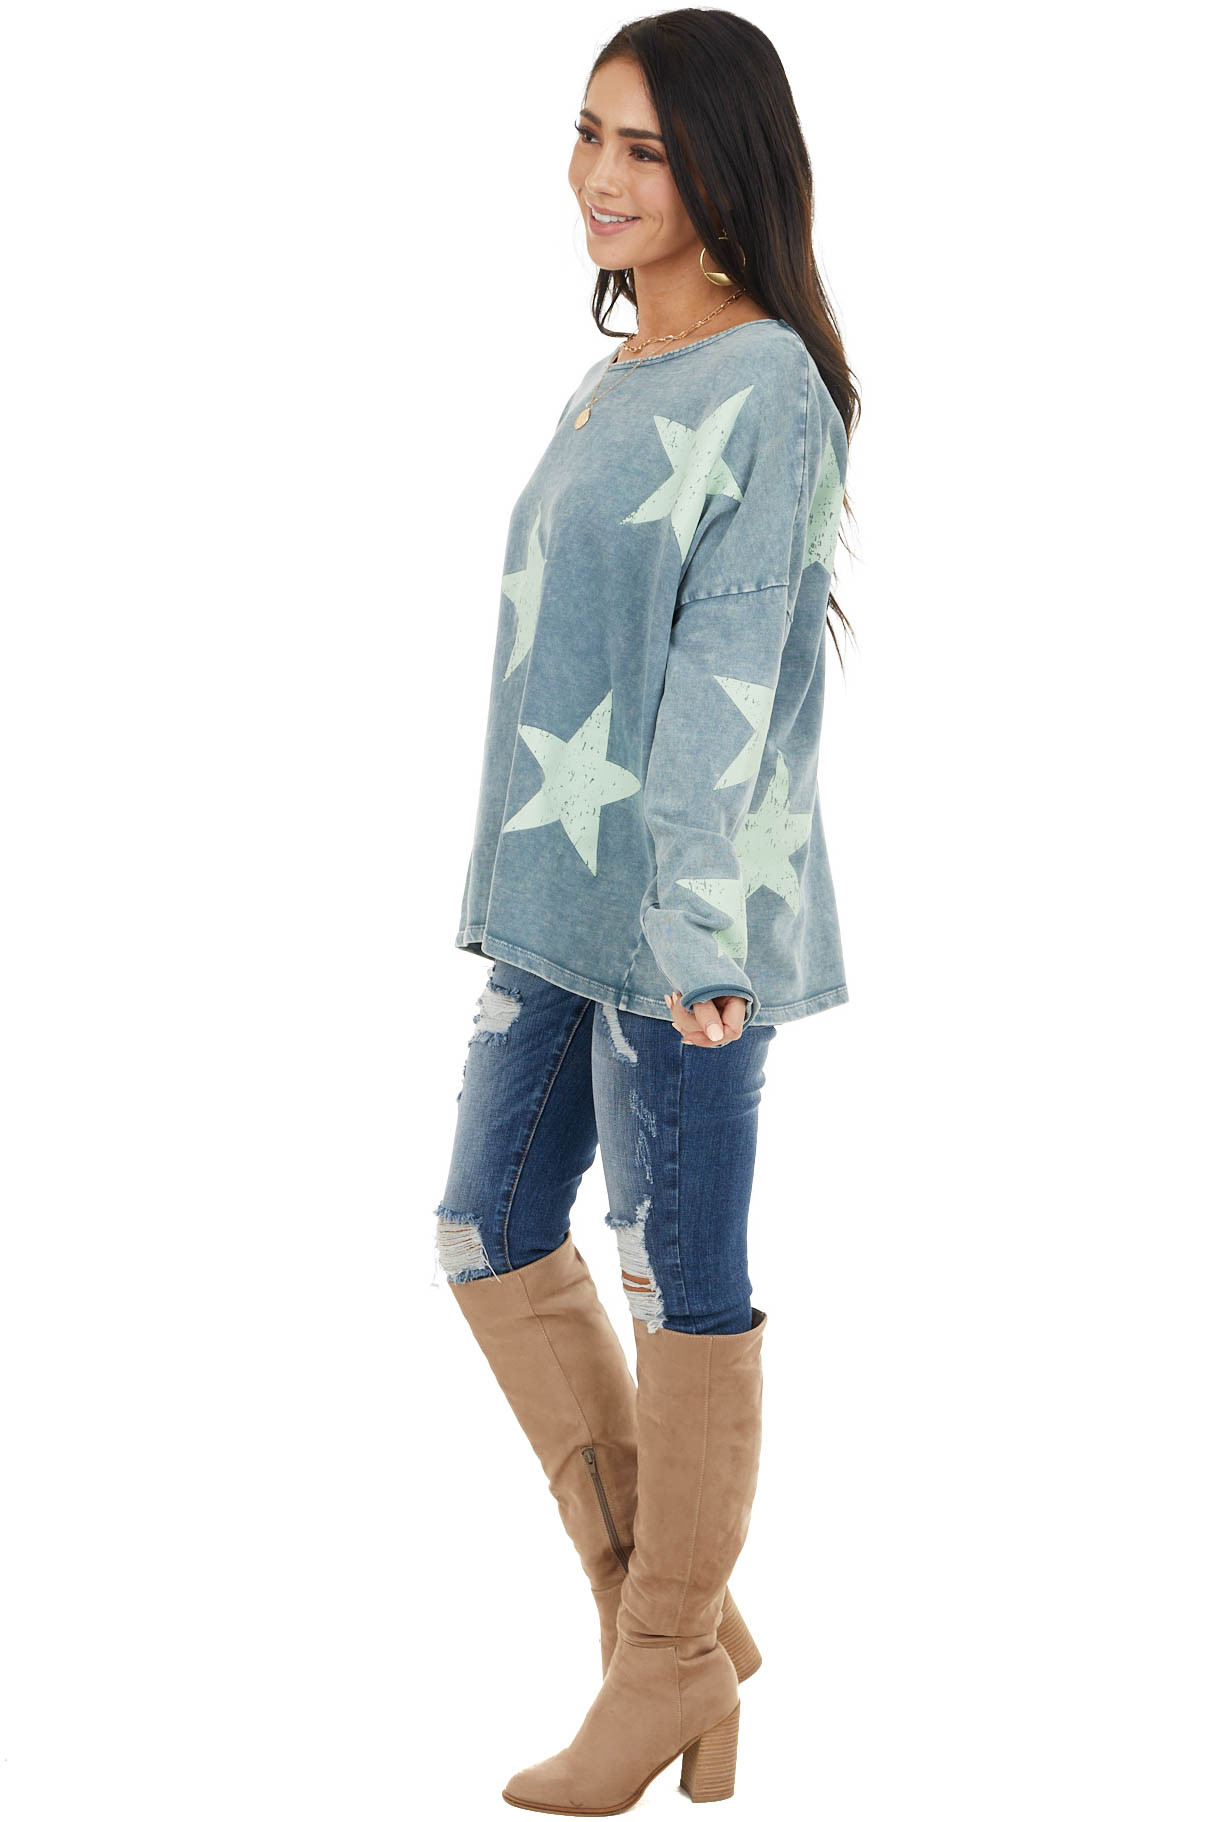 Ocean Blue and Turquoise Star Print Long Sleeve Knit Top